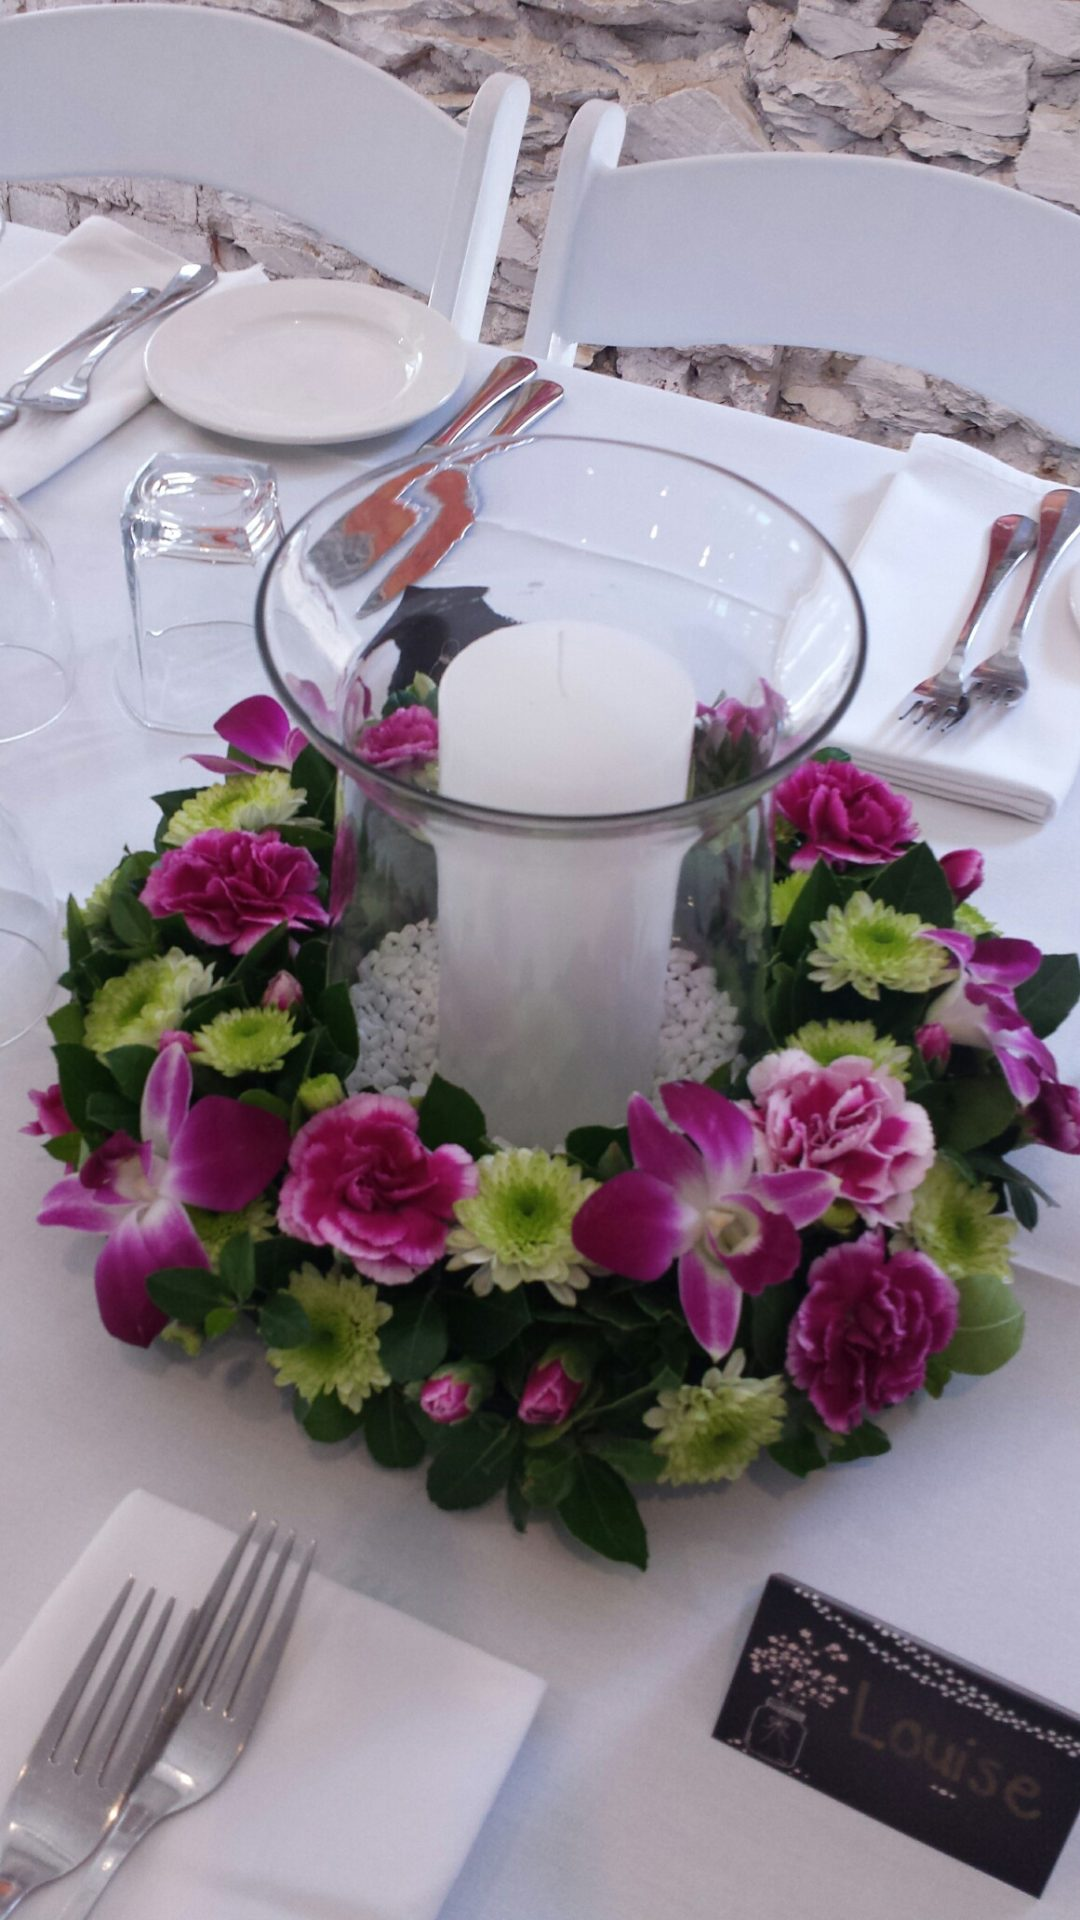 floral-wreath-base-with-candle-vase